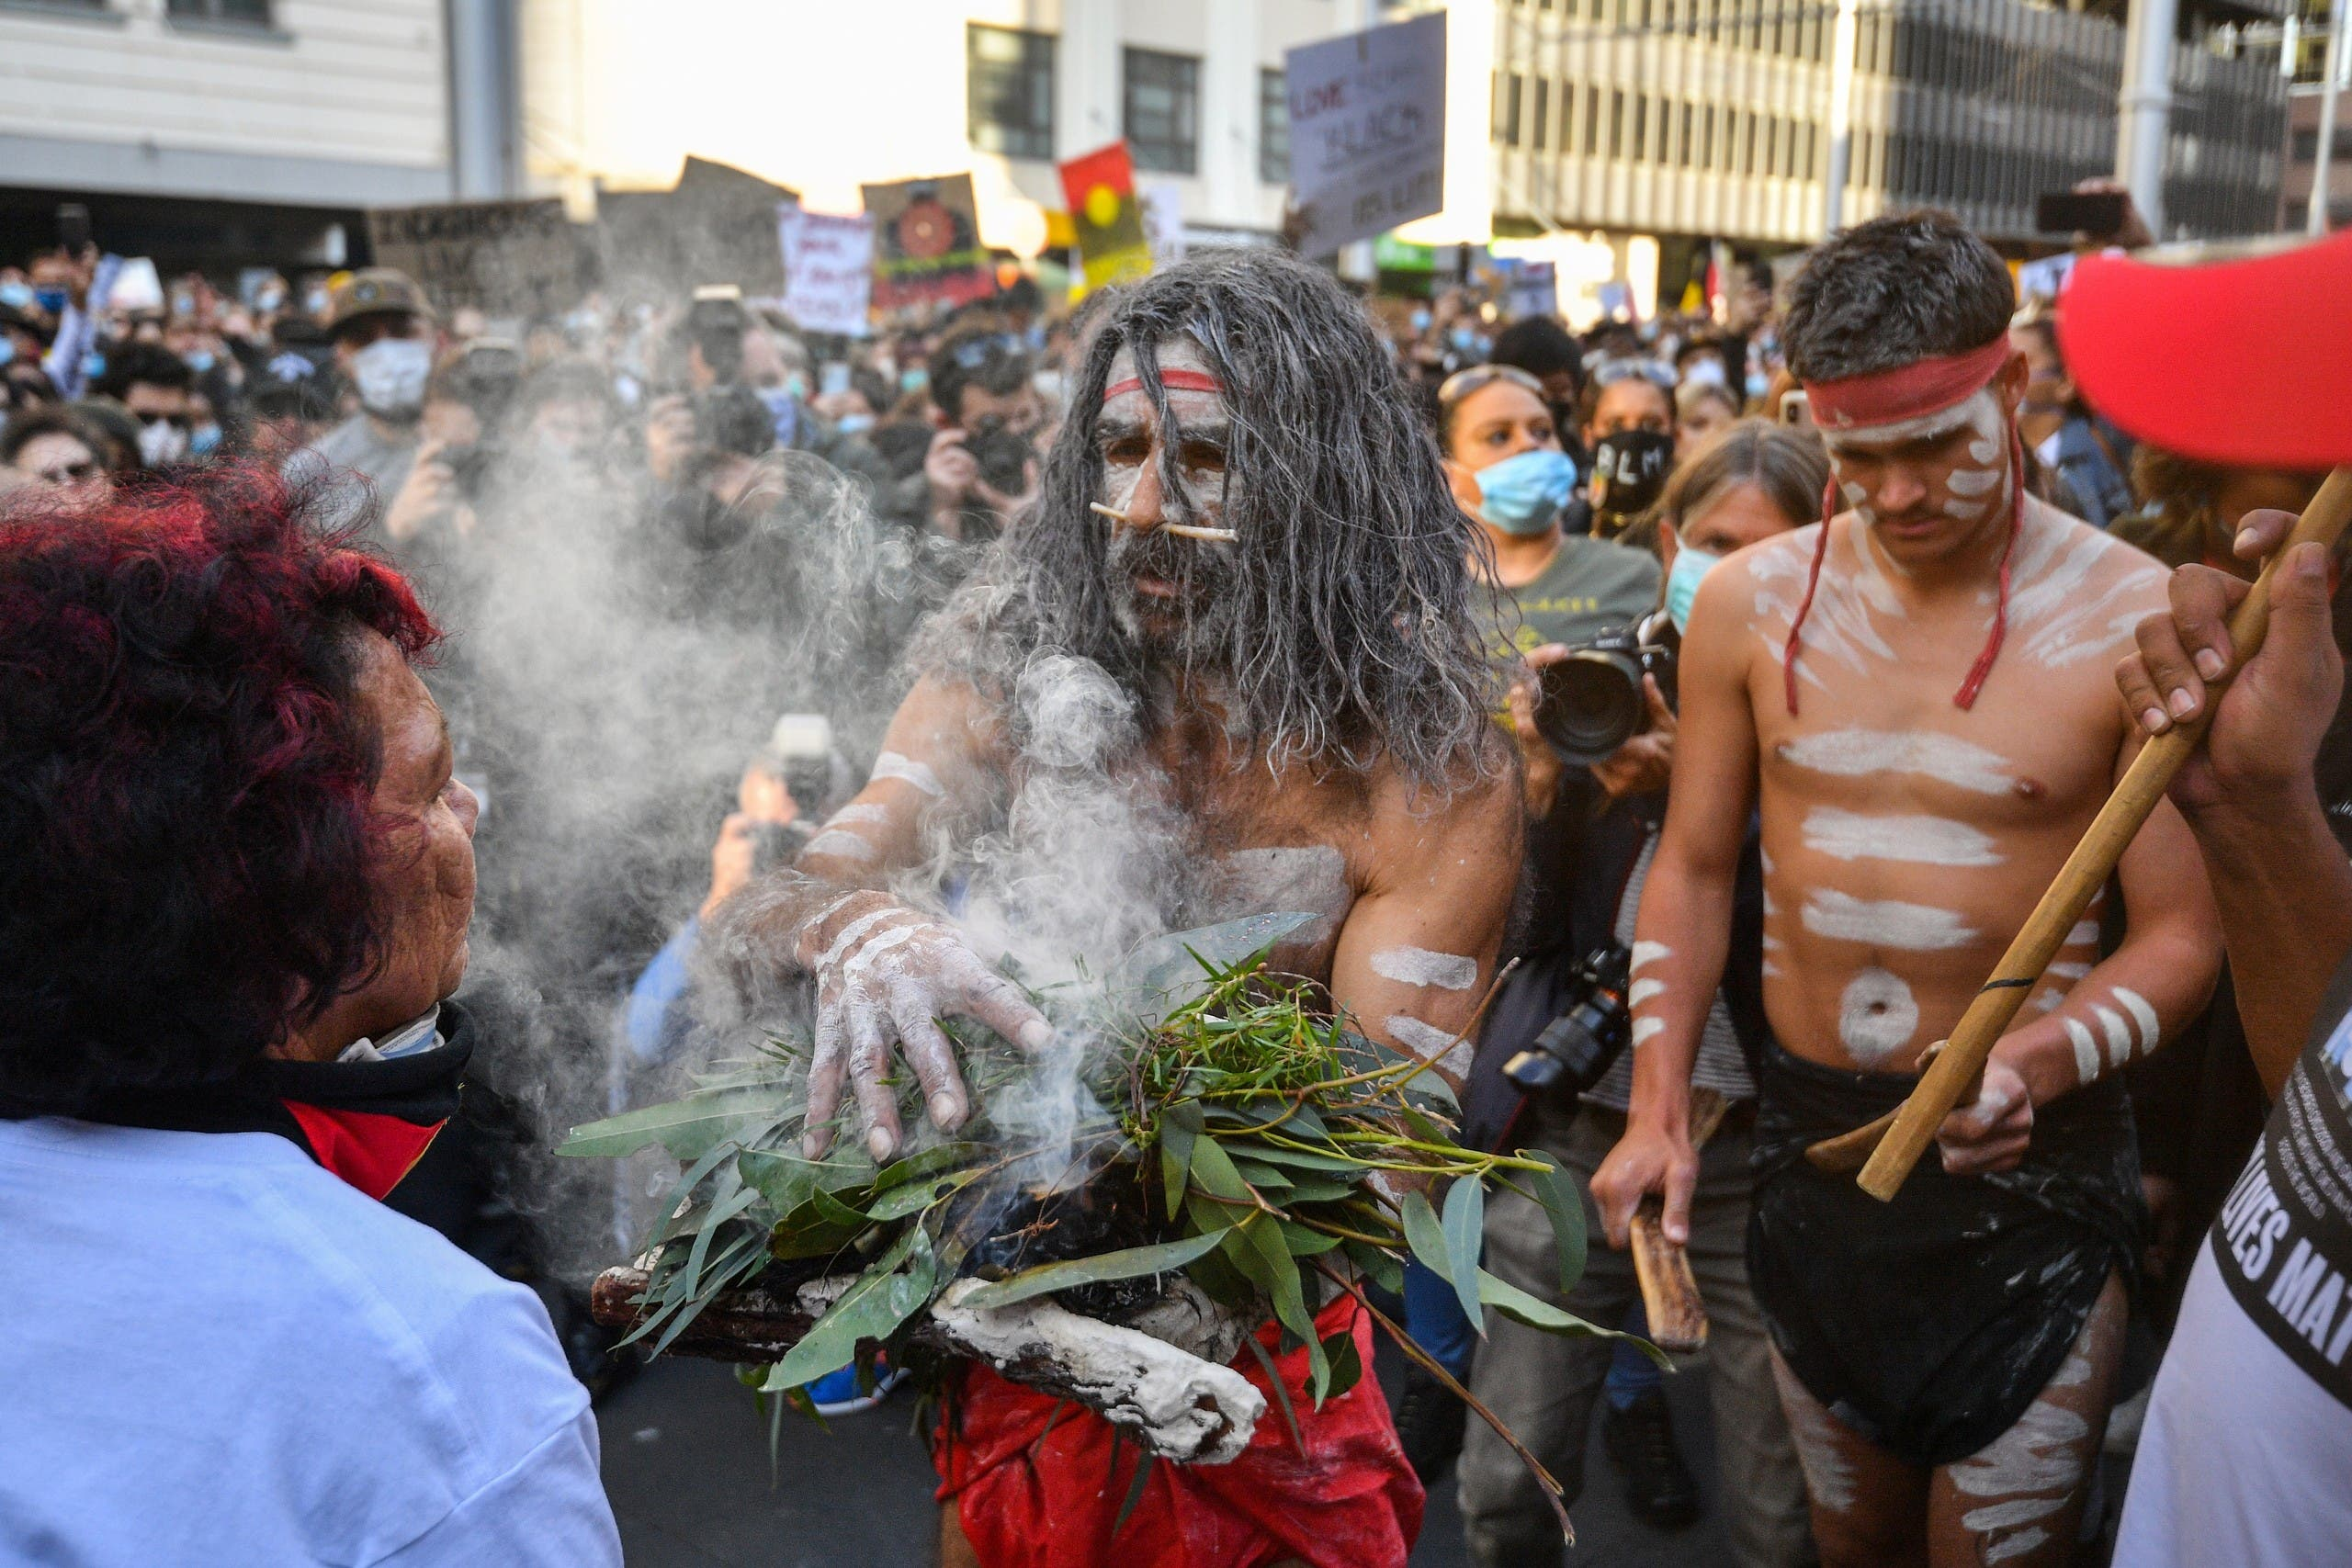 A man in aboriginal dress takes part in the Black Lives Matter protests in Sydney, June 6, 2020. (AFP)